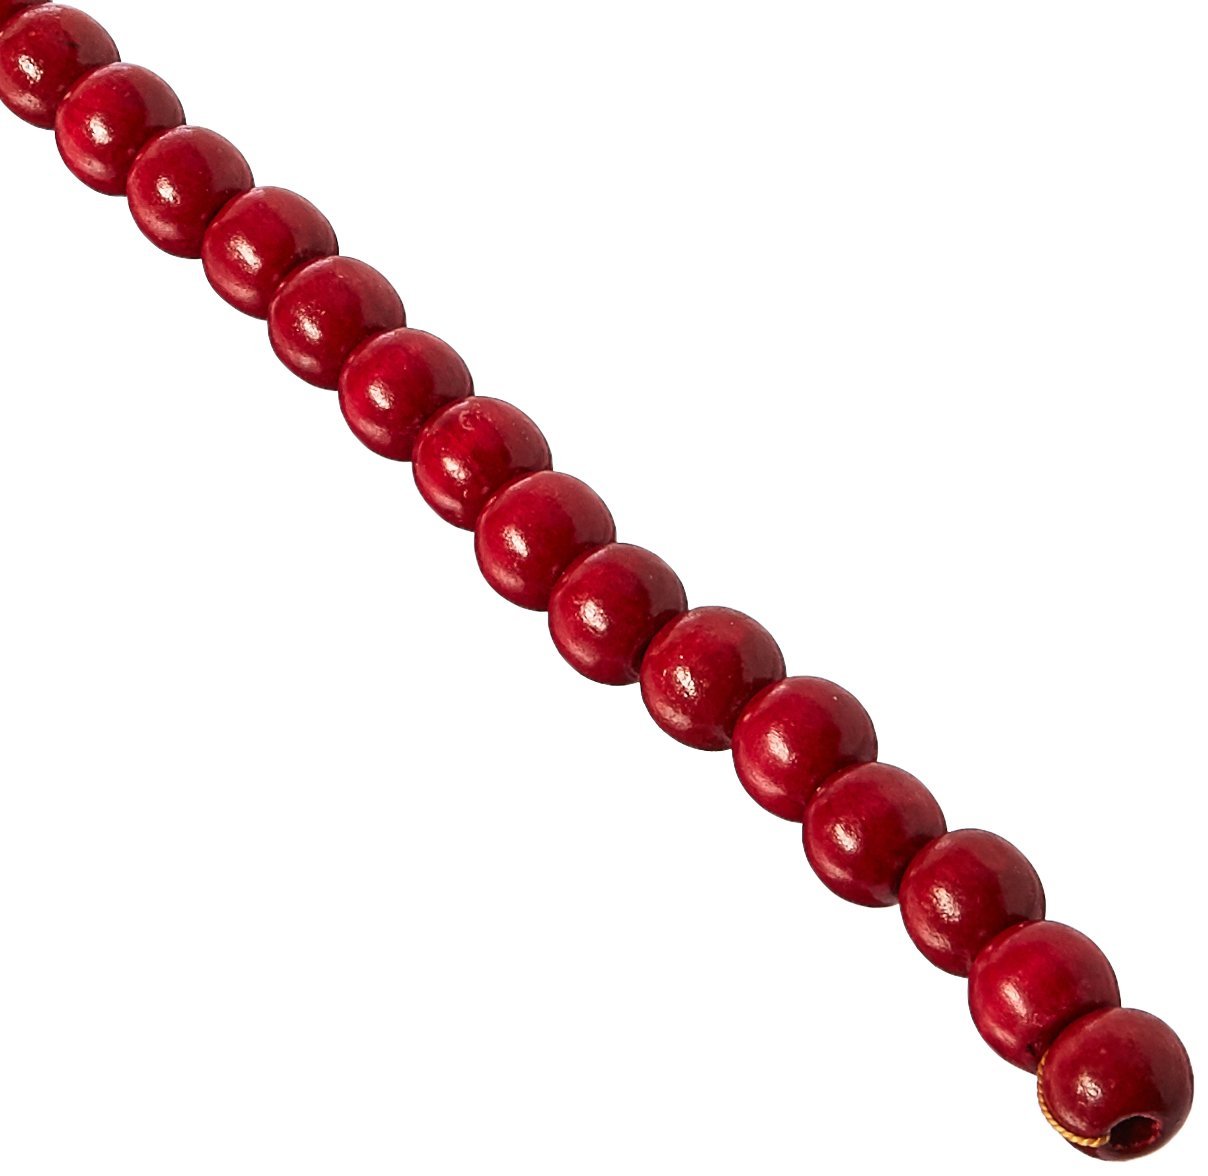 Darice 14mm Wood Bead Garland, 9-Feet, Burgundy 2615-07